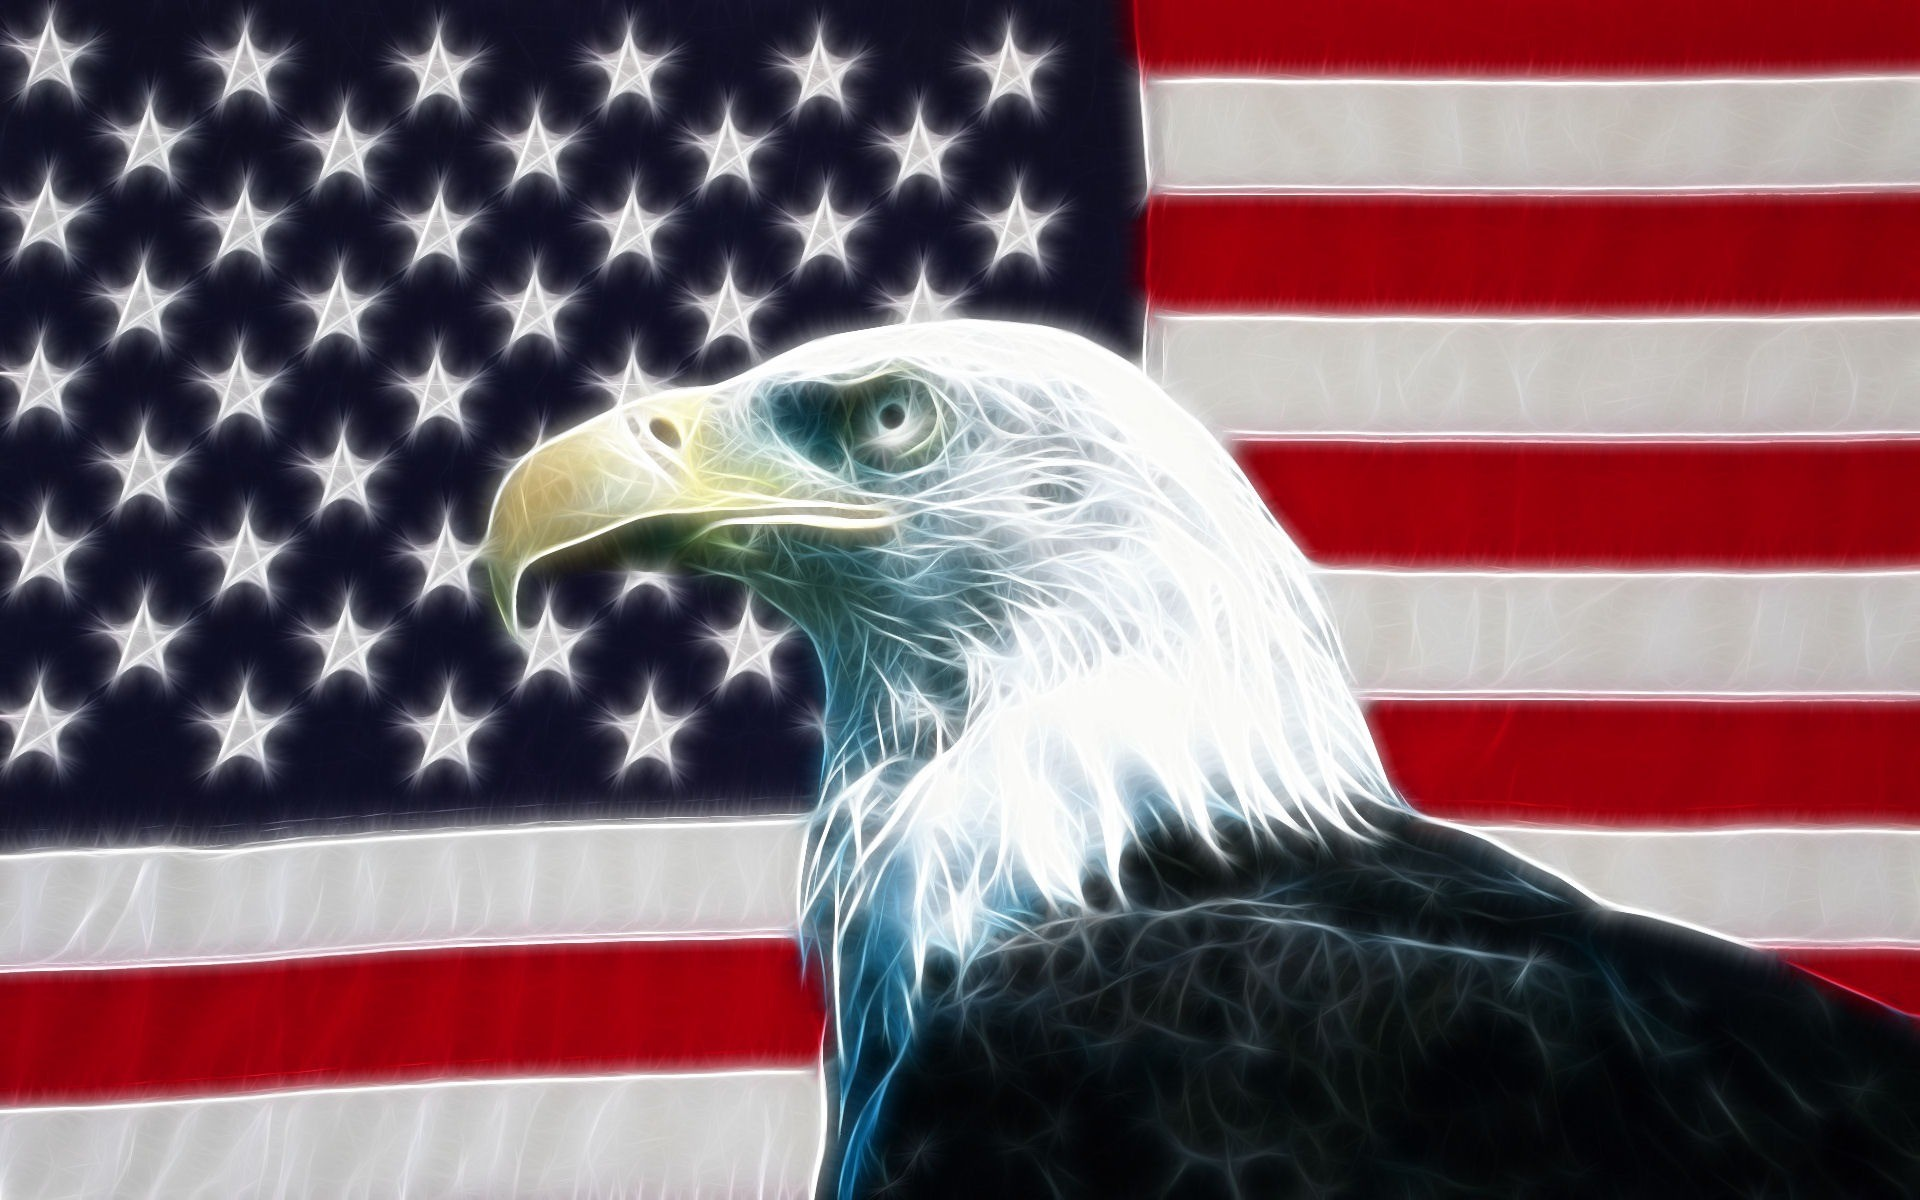 American Flag Eagle | *Cell Phone Wallpaper | Pinterest | American flag  eagle and Wallpaper backgrounds